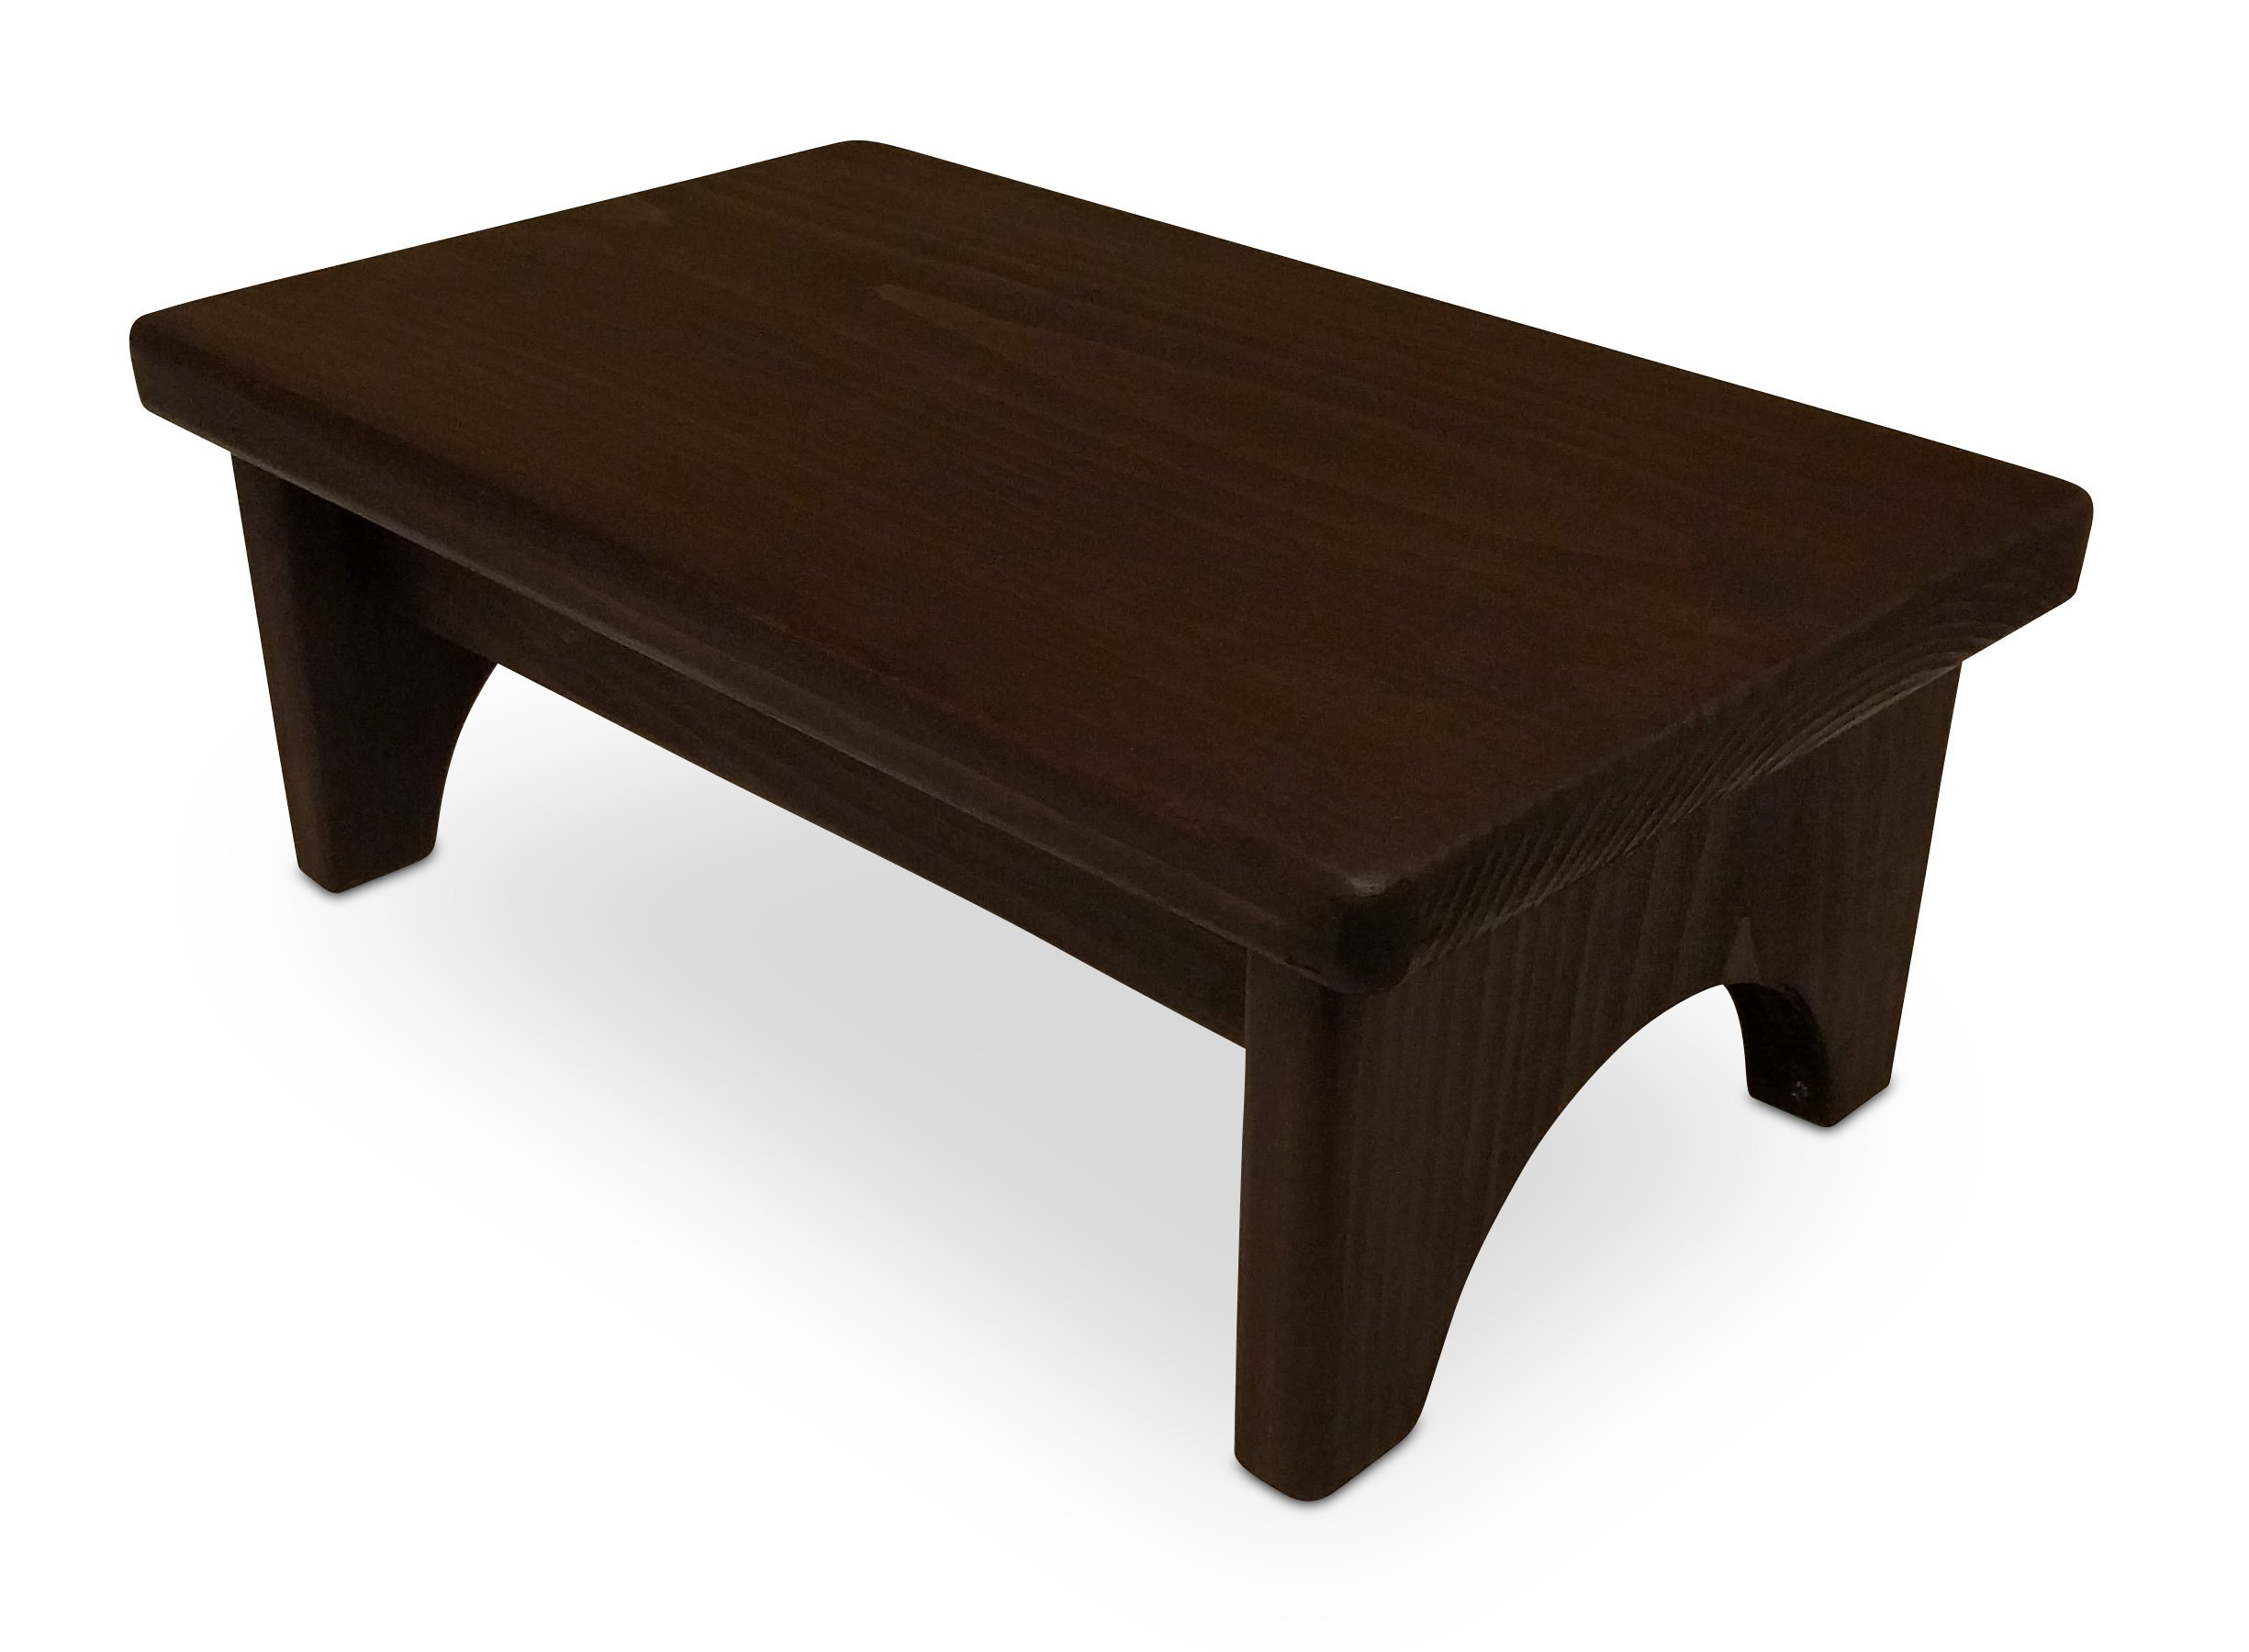 Super Cheap Foot Stool Wood Find Foot Stool Wood Deals On Line At Machost Co Dining Chair Design Ideas Machostcouk